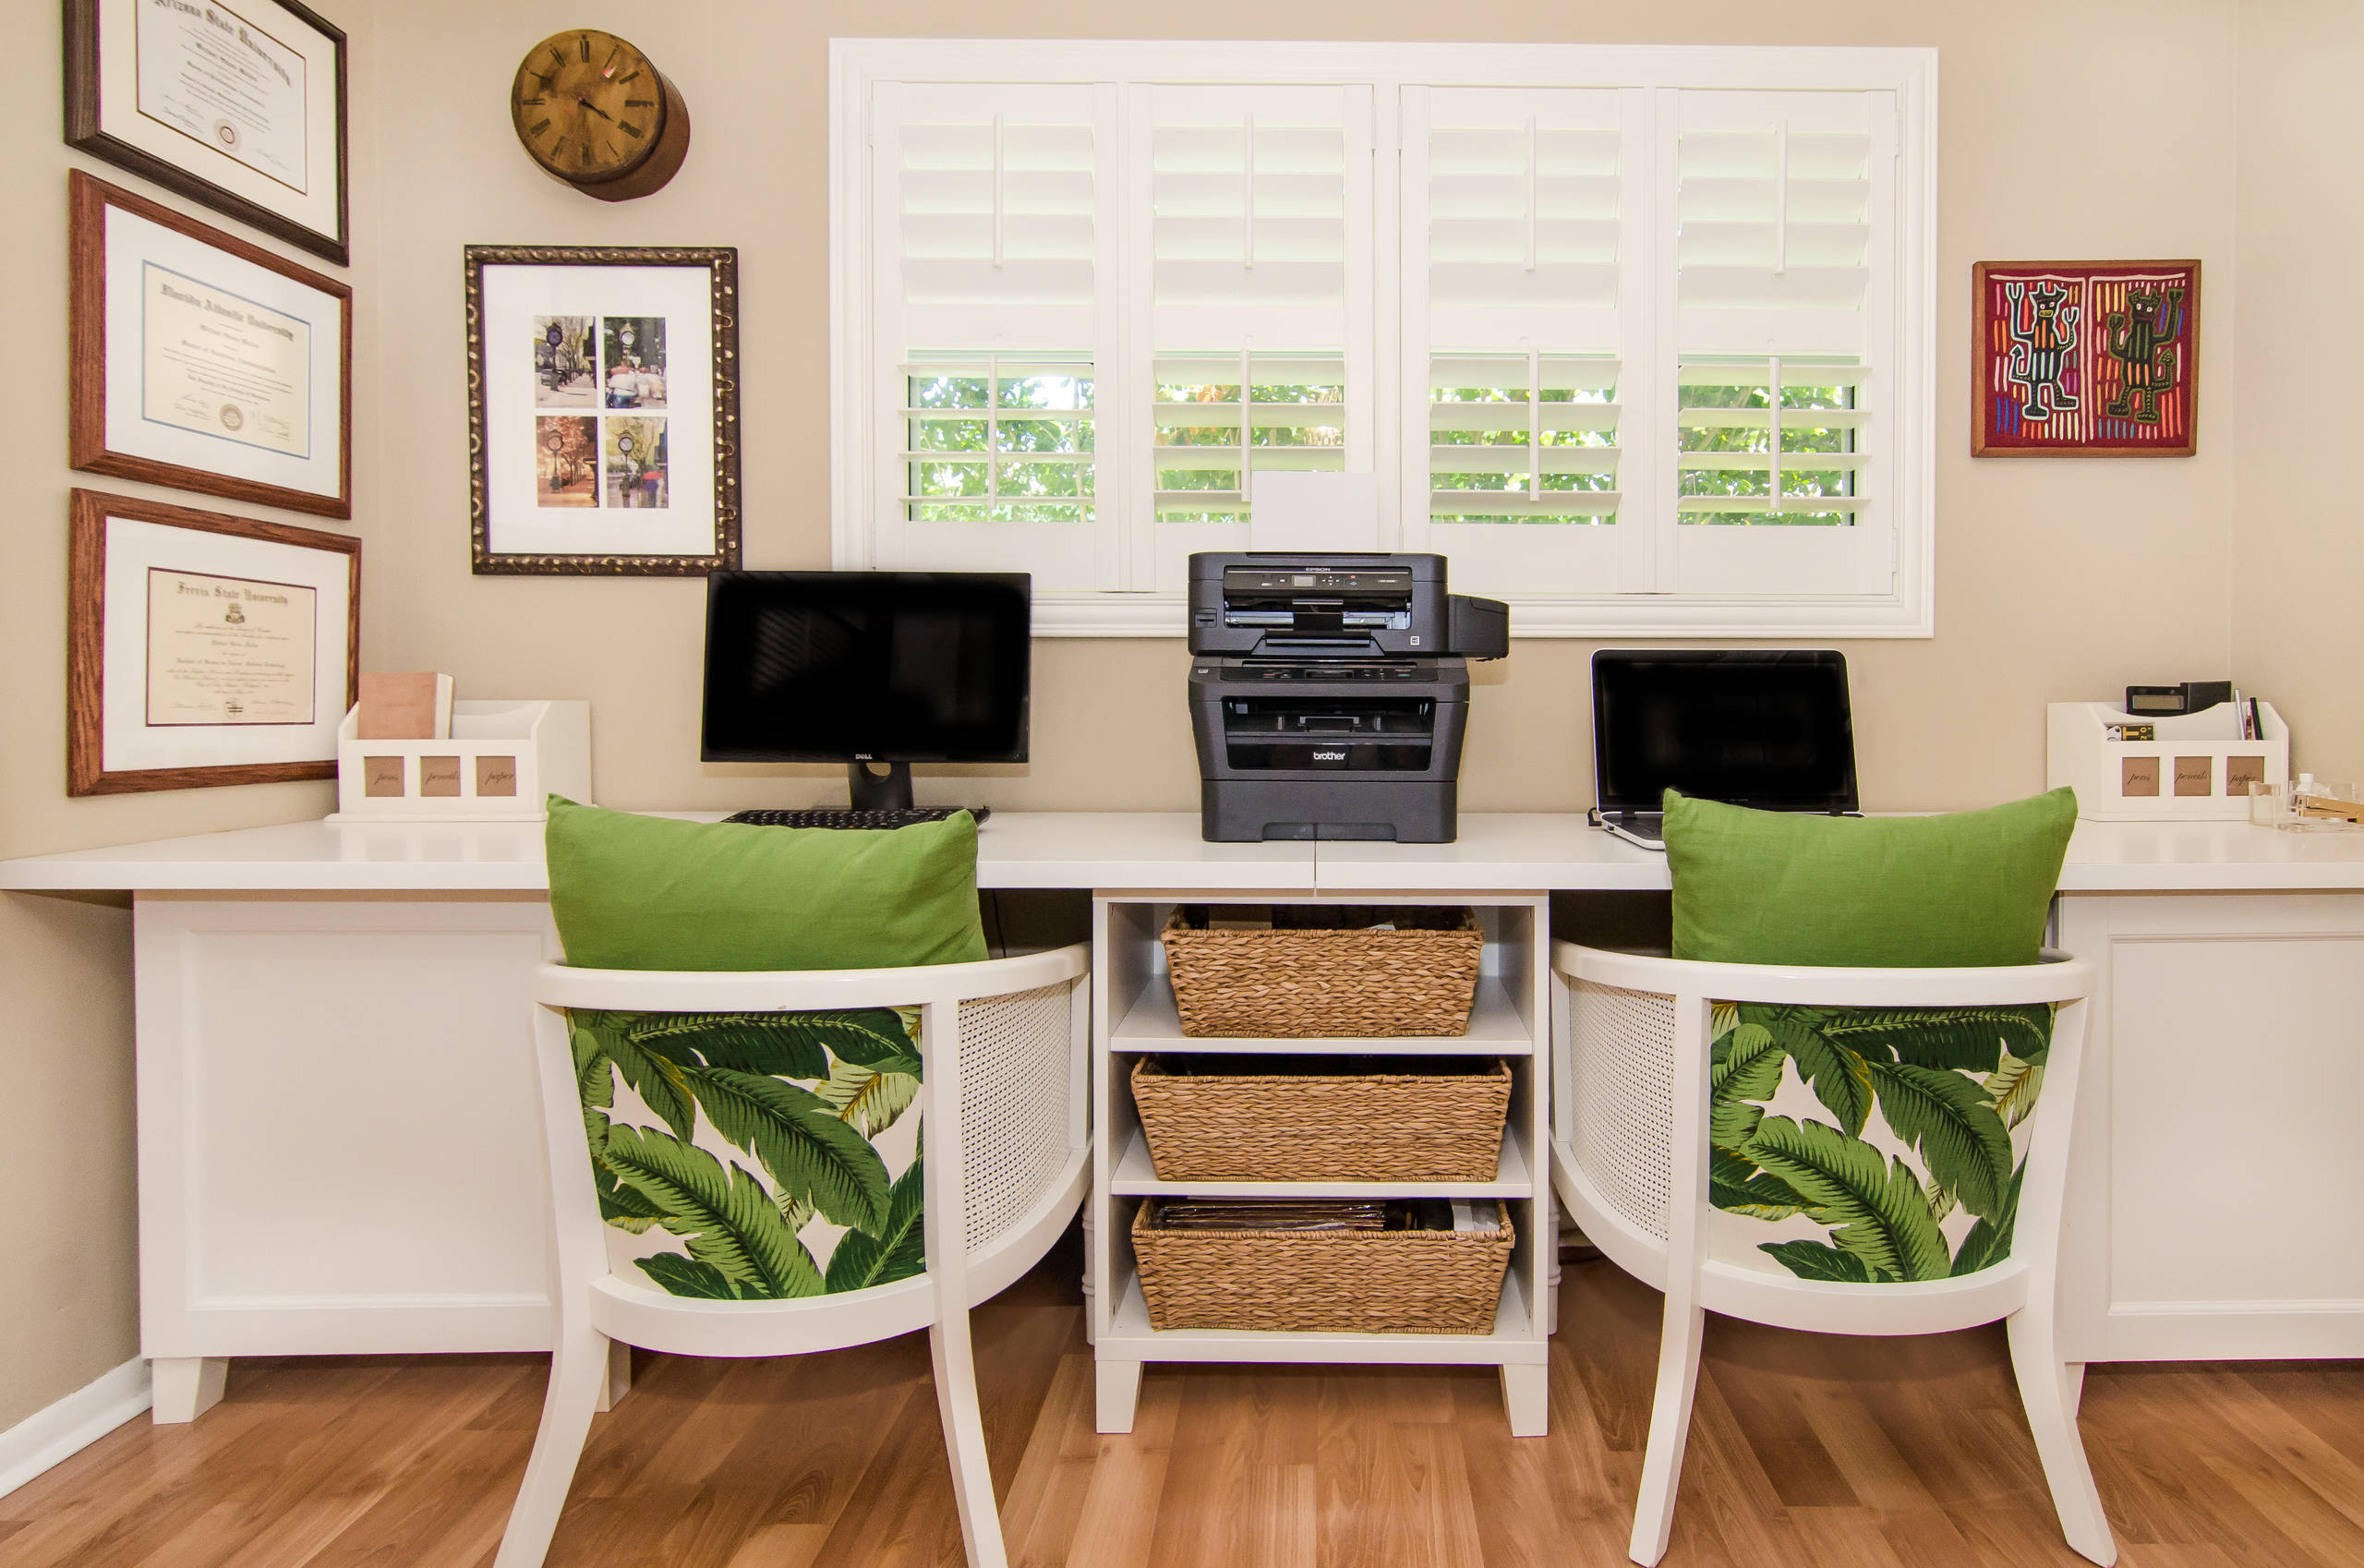 75 Beautiful Laminate Floor Craft Room Pictures Ideas February 2021 Houzz